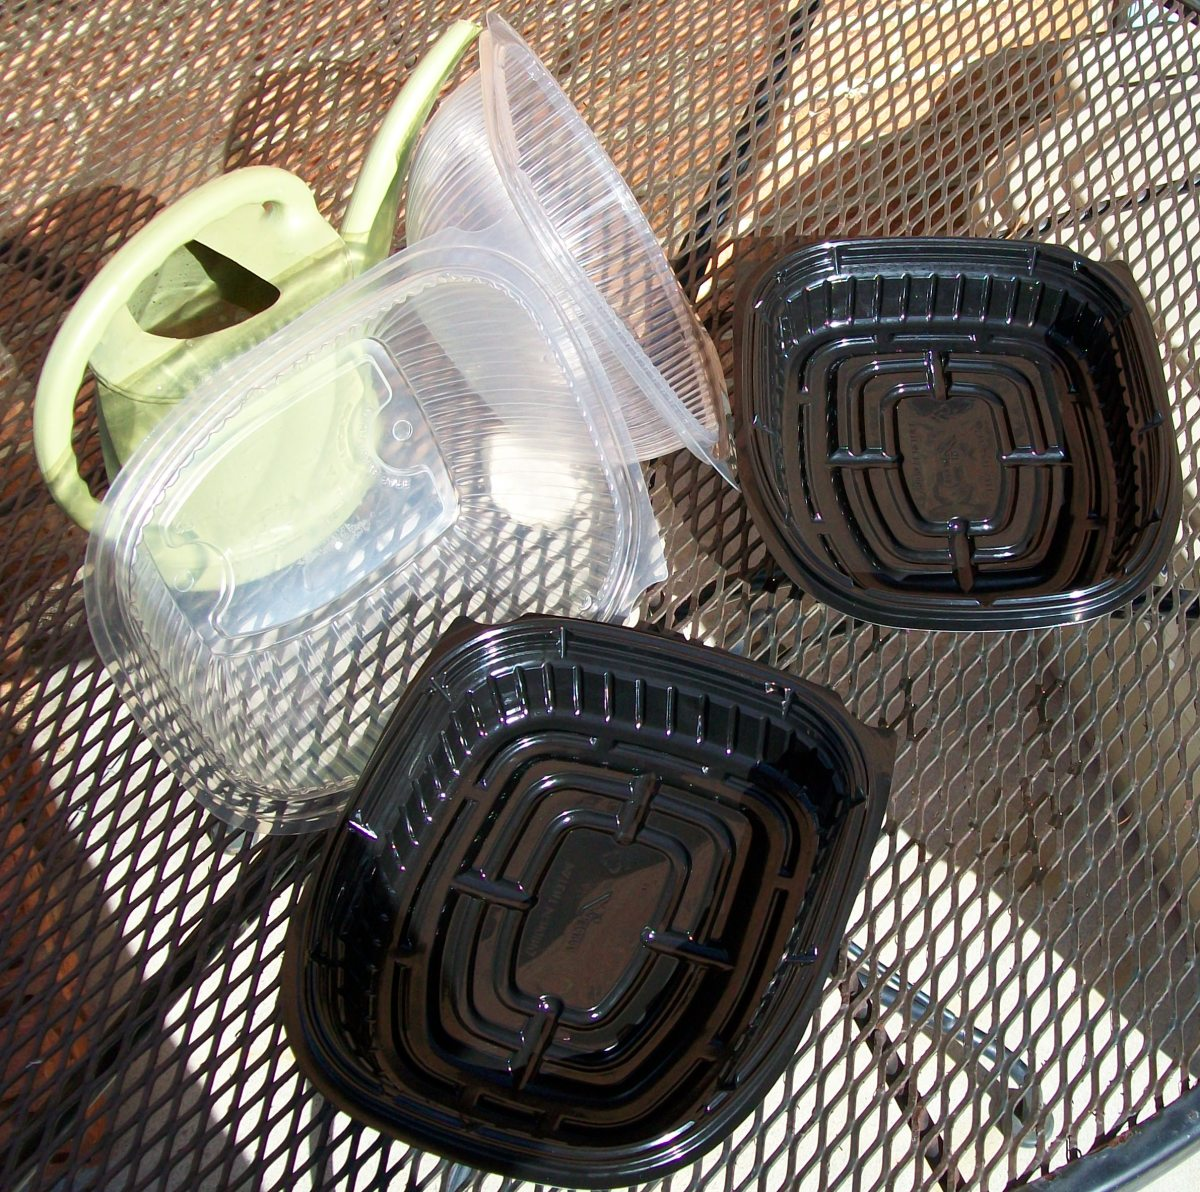 Rotisserie chicken containers make great greenhouses for starting seeds.